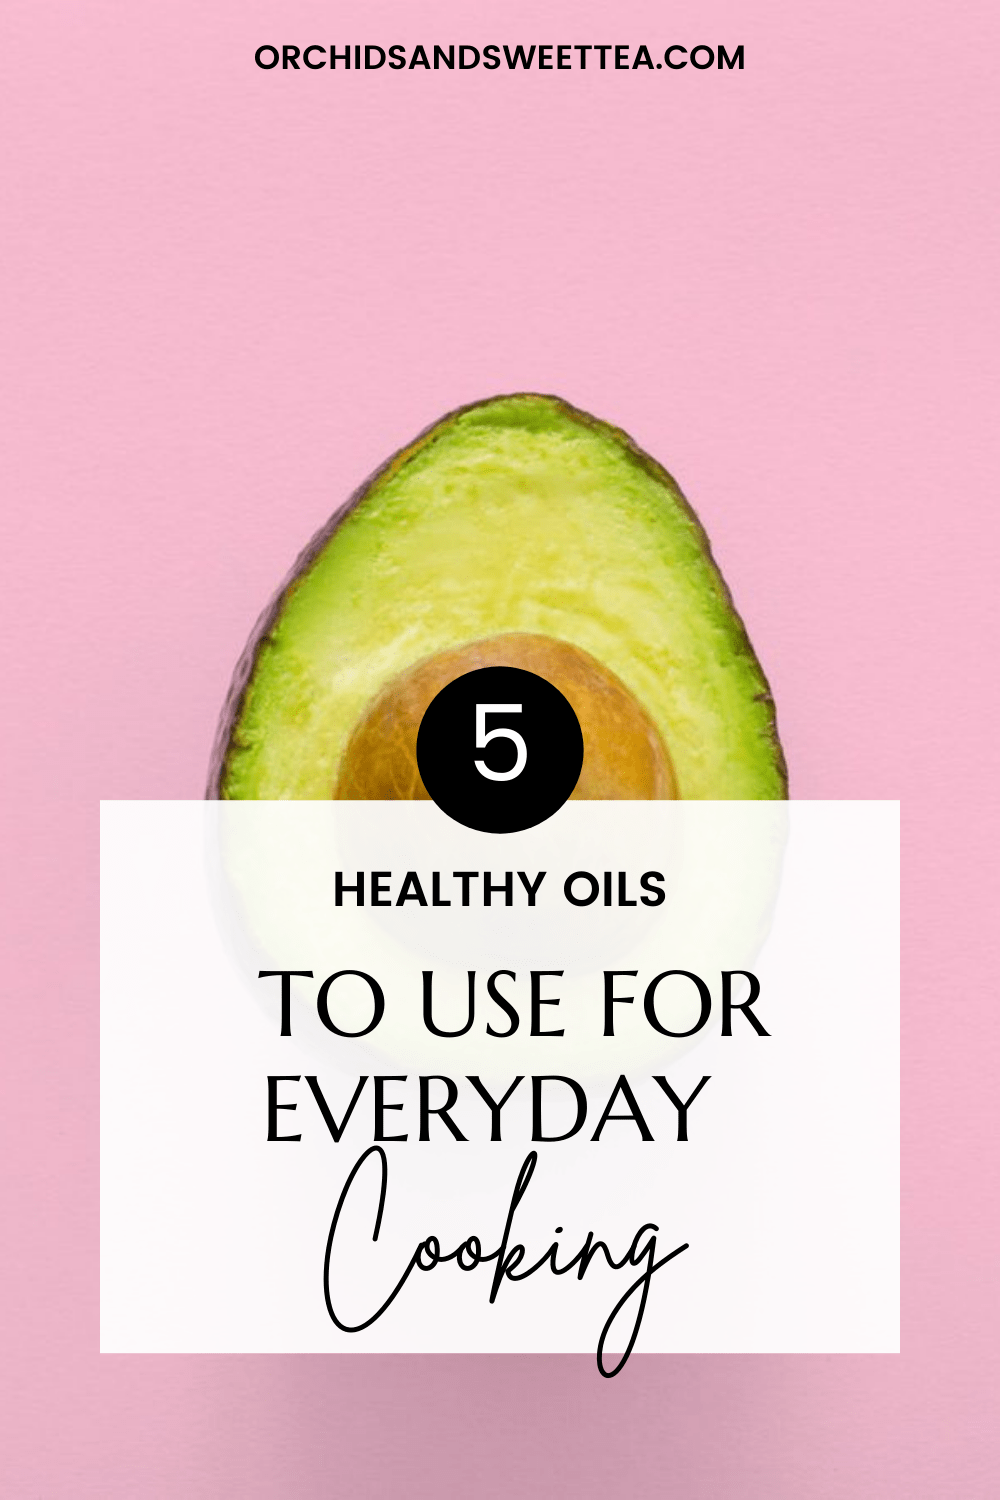 Healthy Oils to Use for Everyday Cooking